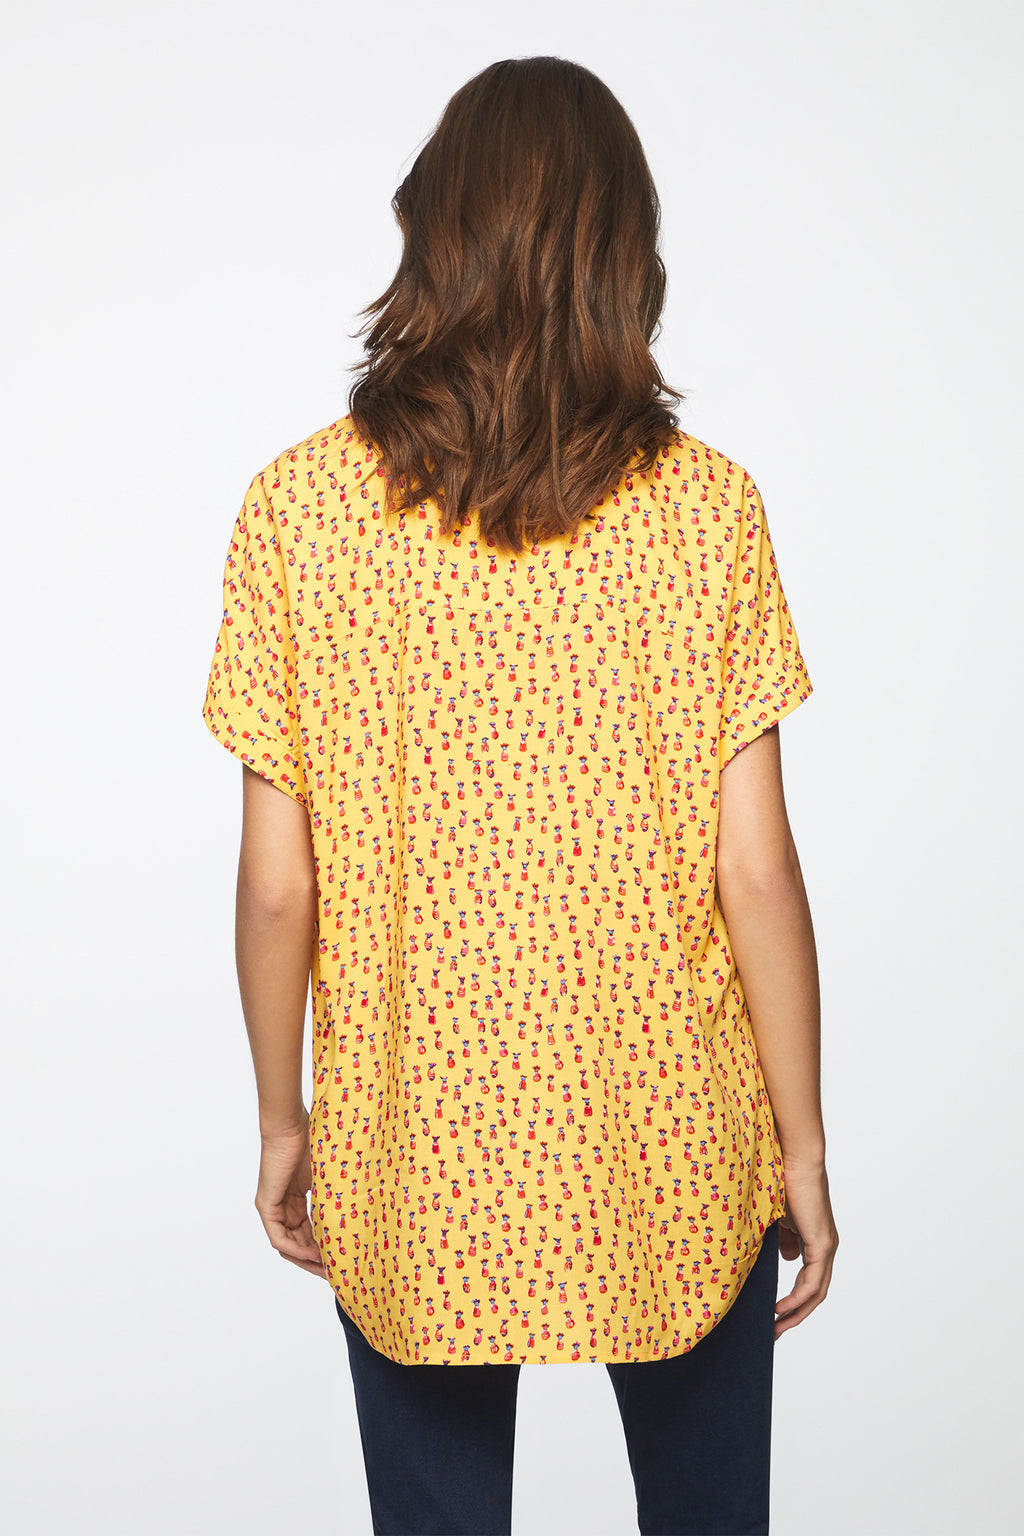 SPENCER SHIRT - MINI PINA